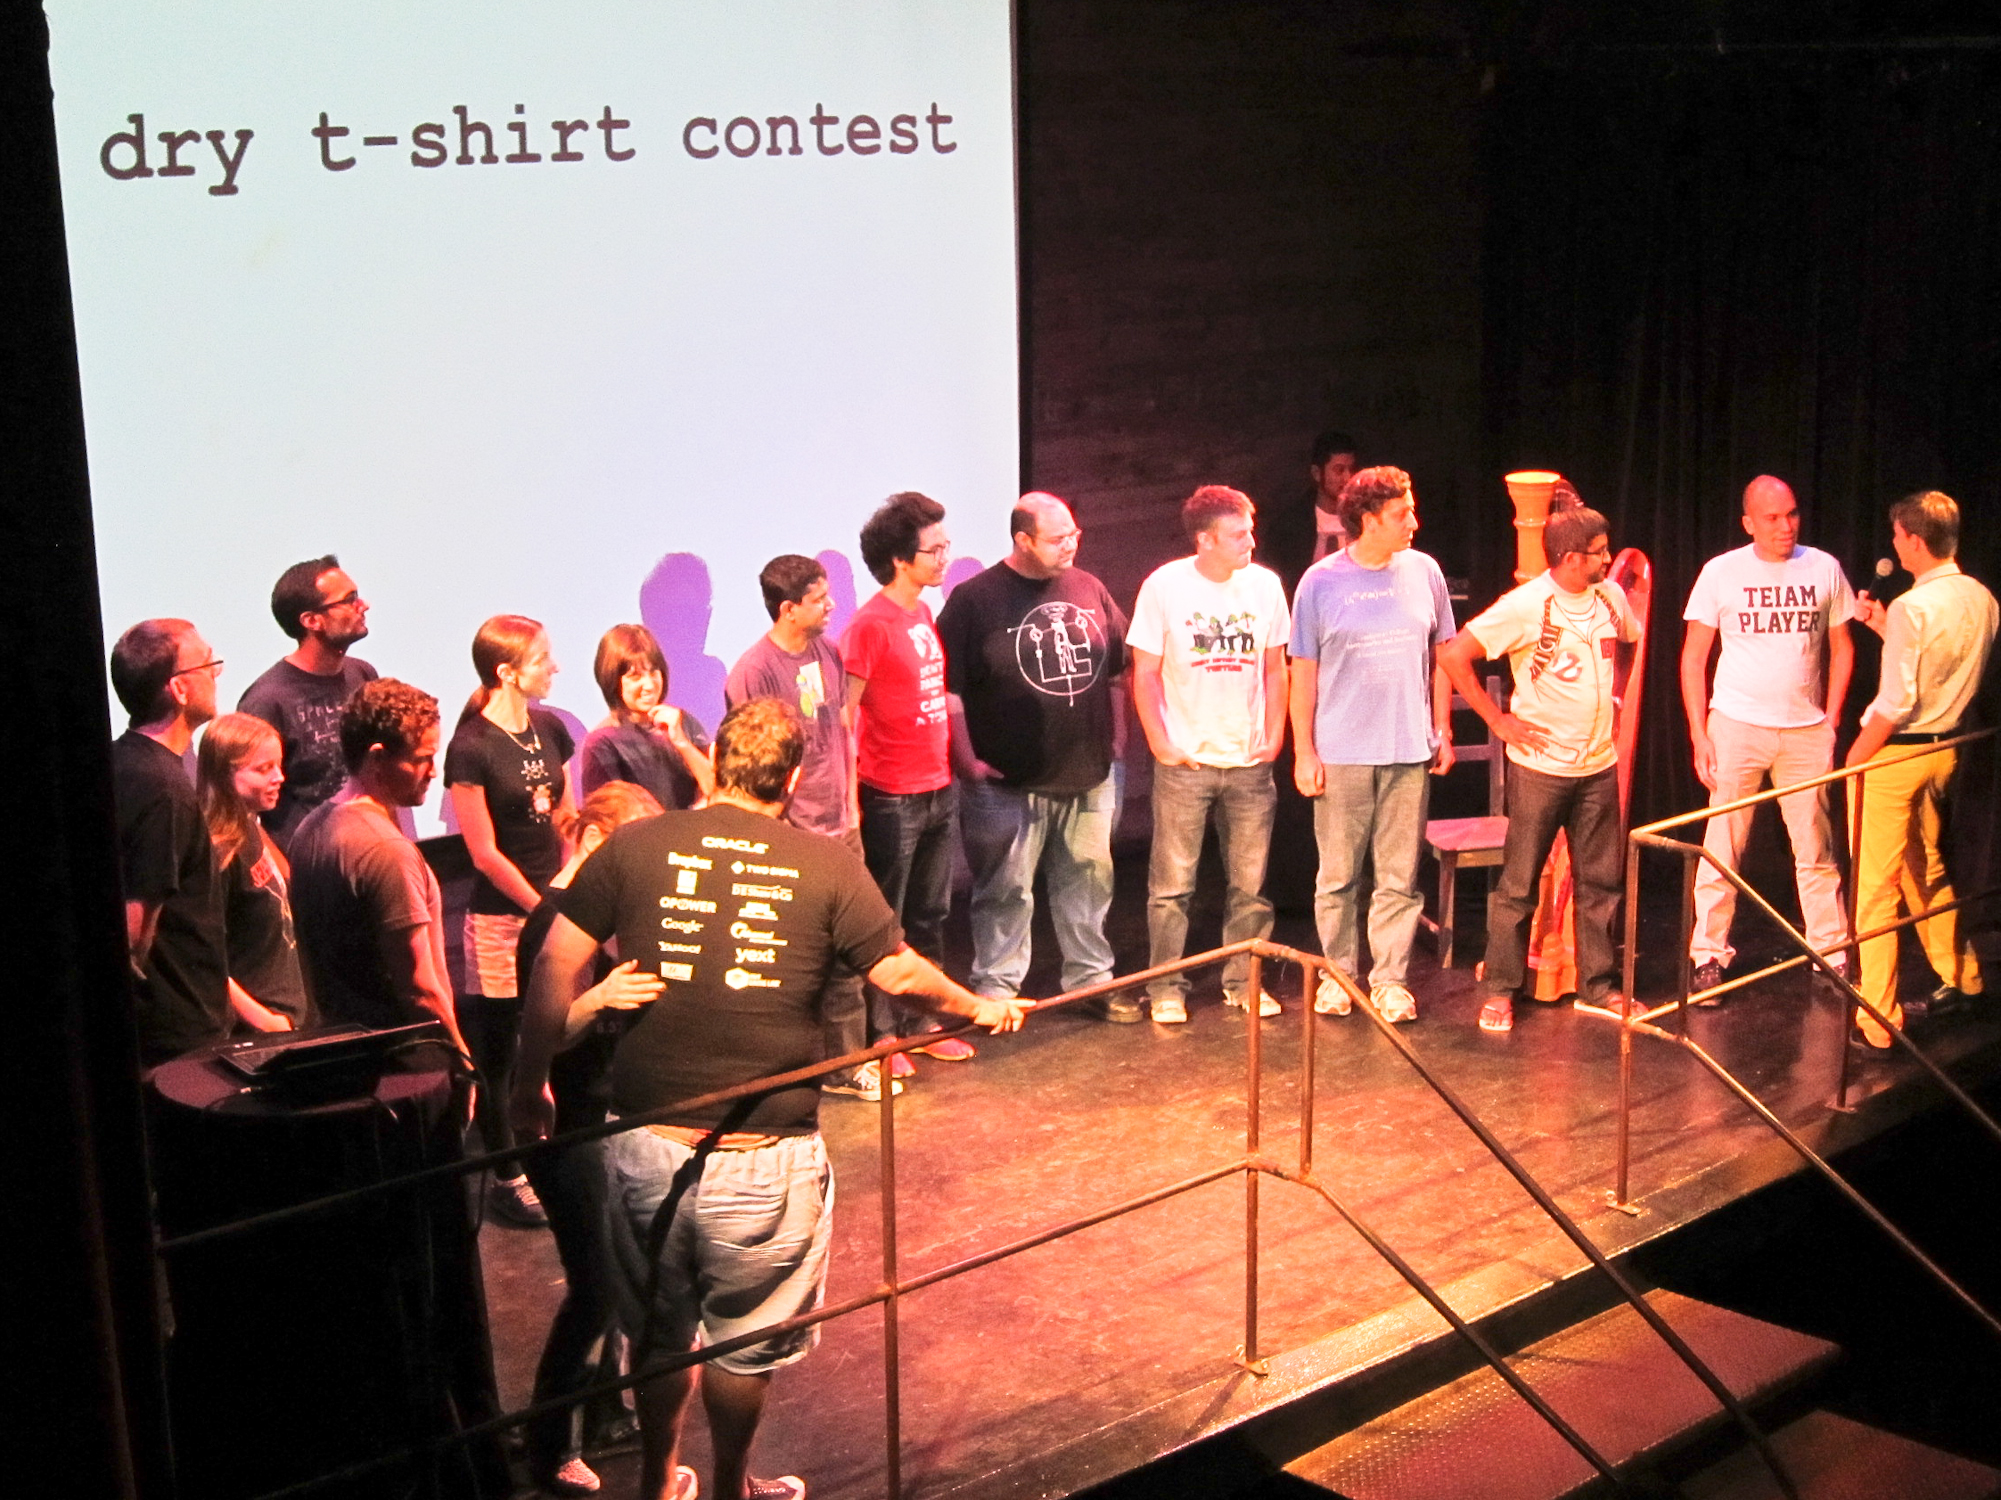 The Nerd Nite dry t-shirt competition.